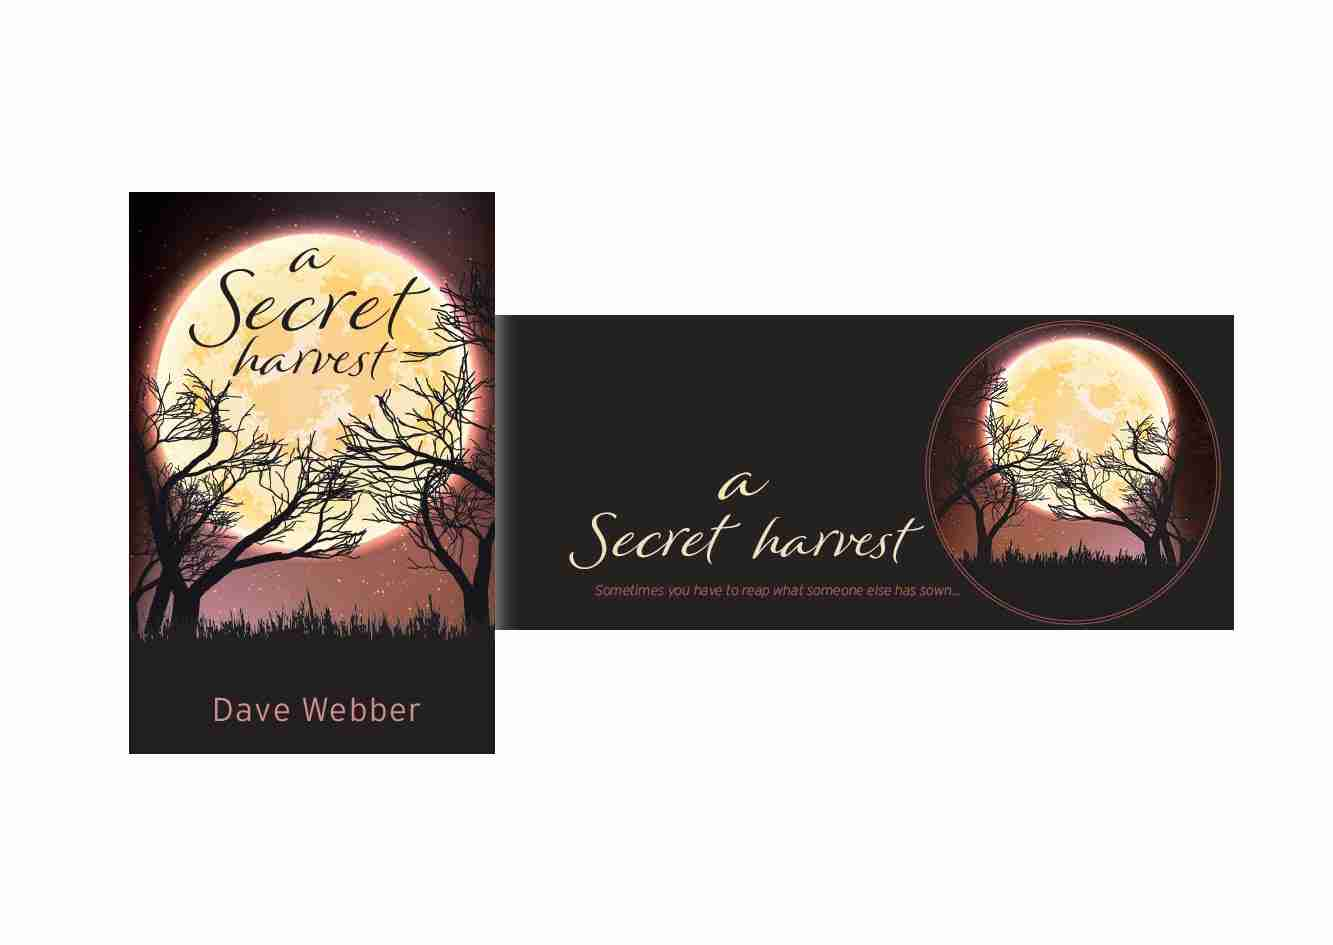 secret-harvest-covers